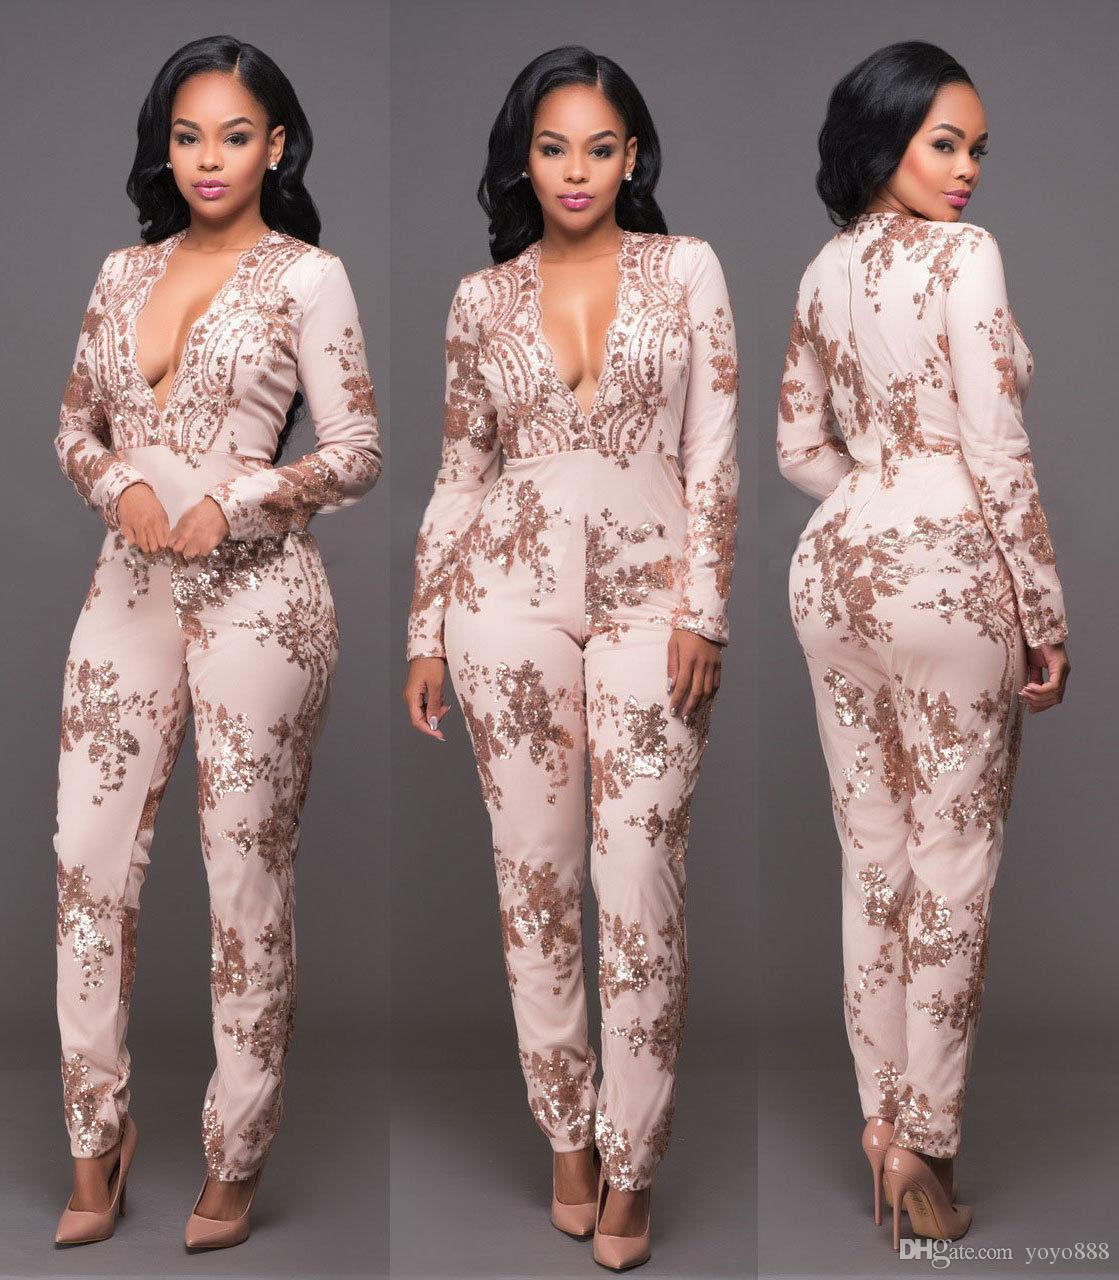 eb4205d268e5 2019 Fashion Champagne Sequins Bandage Bodycon Jumpsuit Catsuit Playsuit  Clubwear 280 From Yoyo888